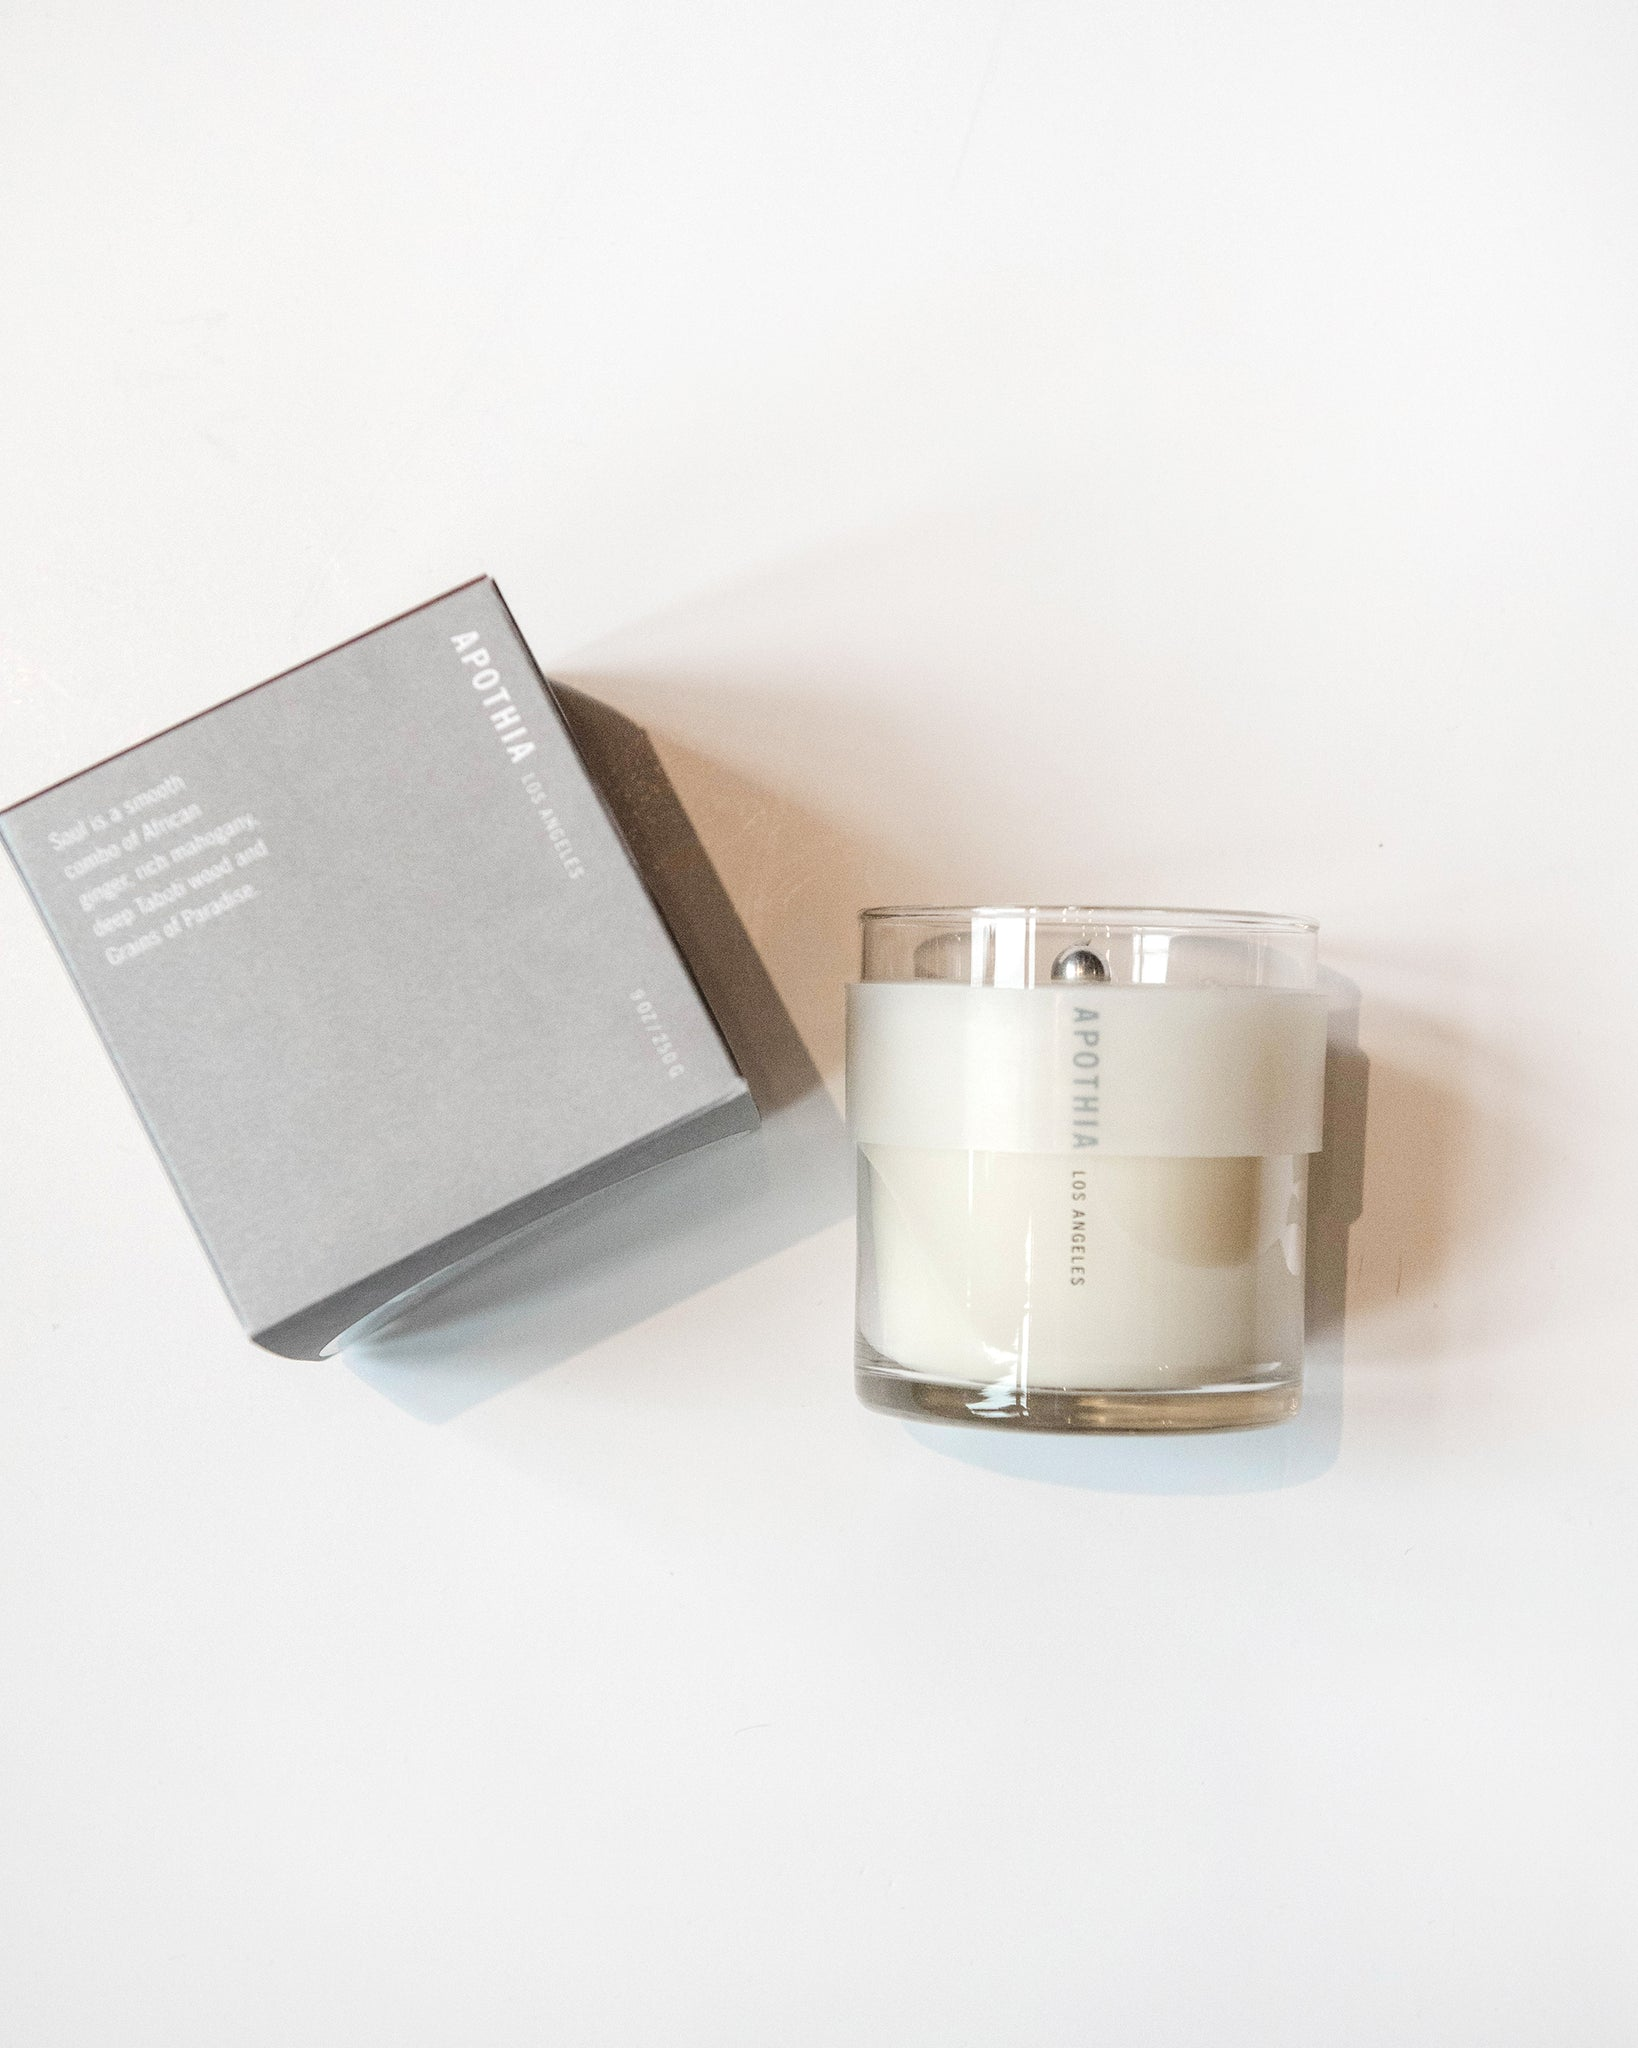 "Sleek white candle in a 9oz jar combines notes of African ginger, rich mahogany, deep taboti wood, and grains of paradise. Also includes a patented, heat protected ""halo"" band around top of glass for ease of moving. 60 hour burn time."